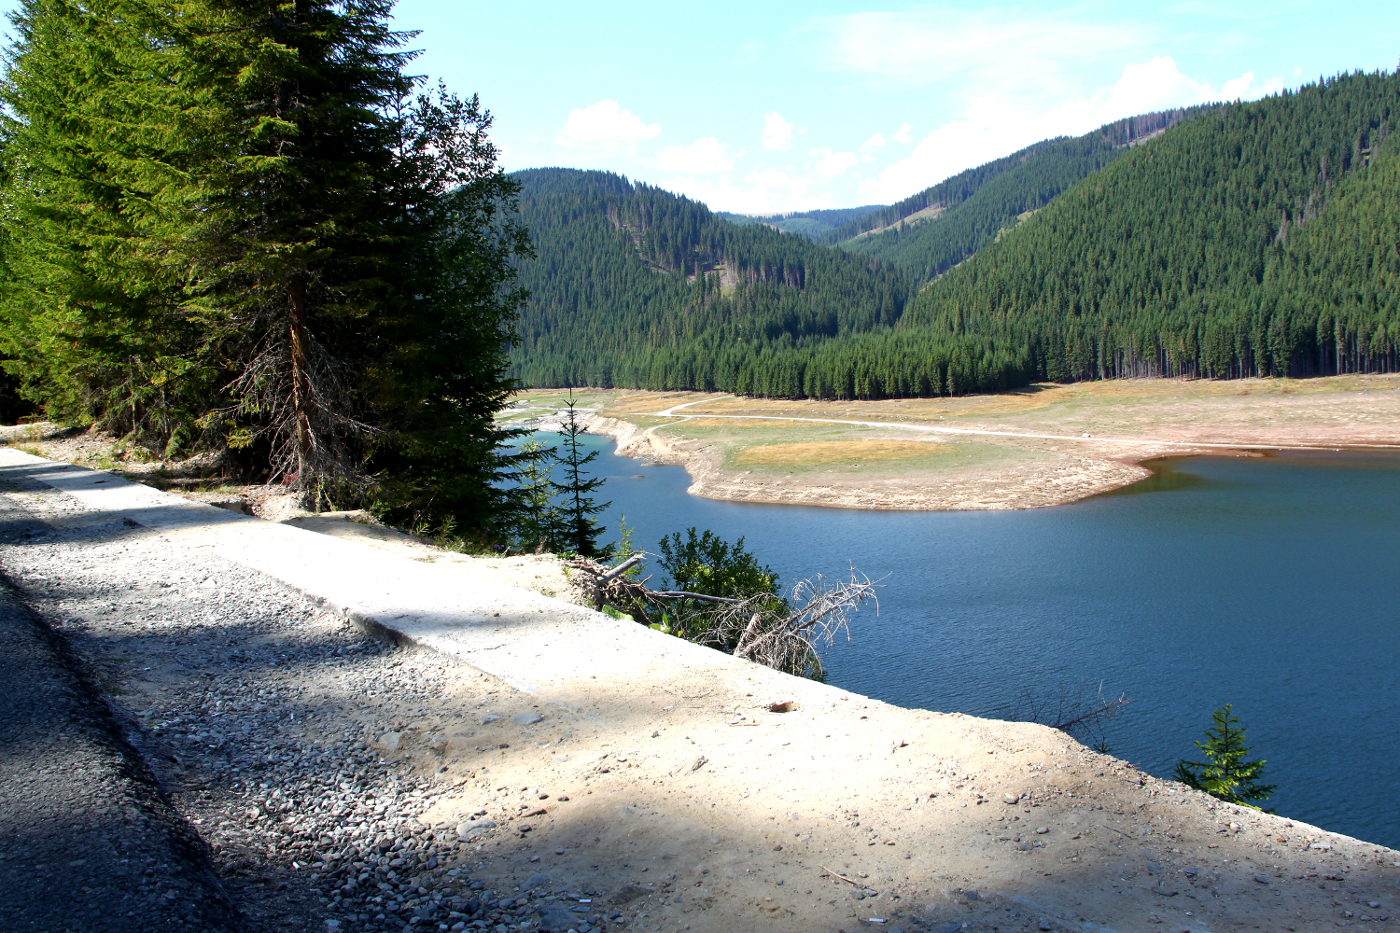 A beautiful lake surrounded by mountains near the Transalpina